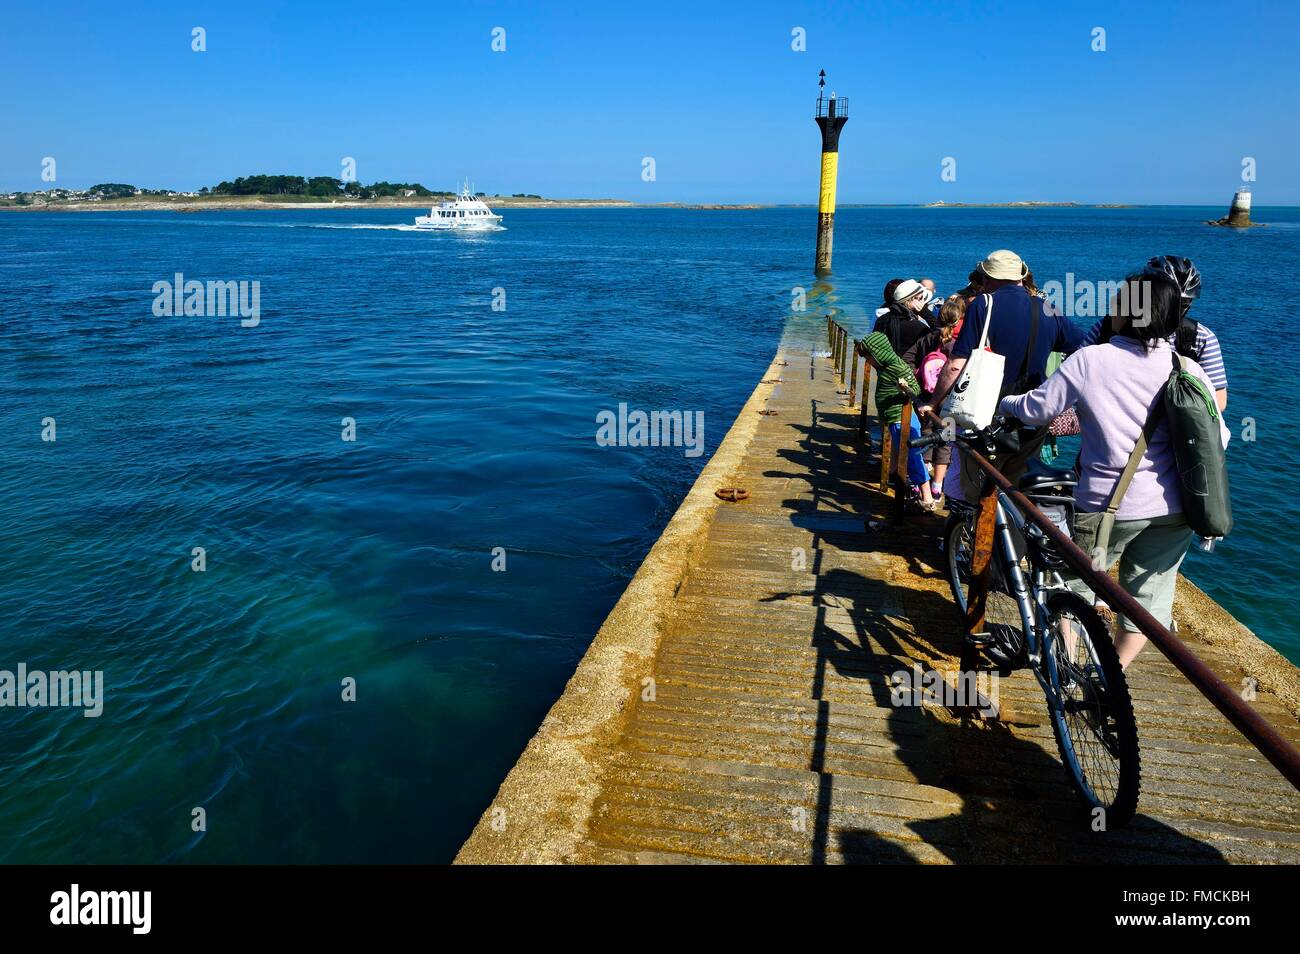 France, Finistere, Roscoff, embarkation for the Batz island - Stock Image